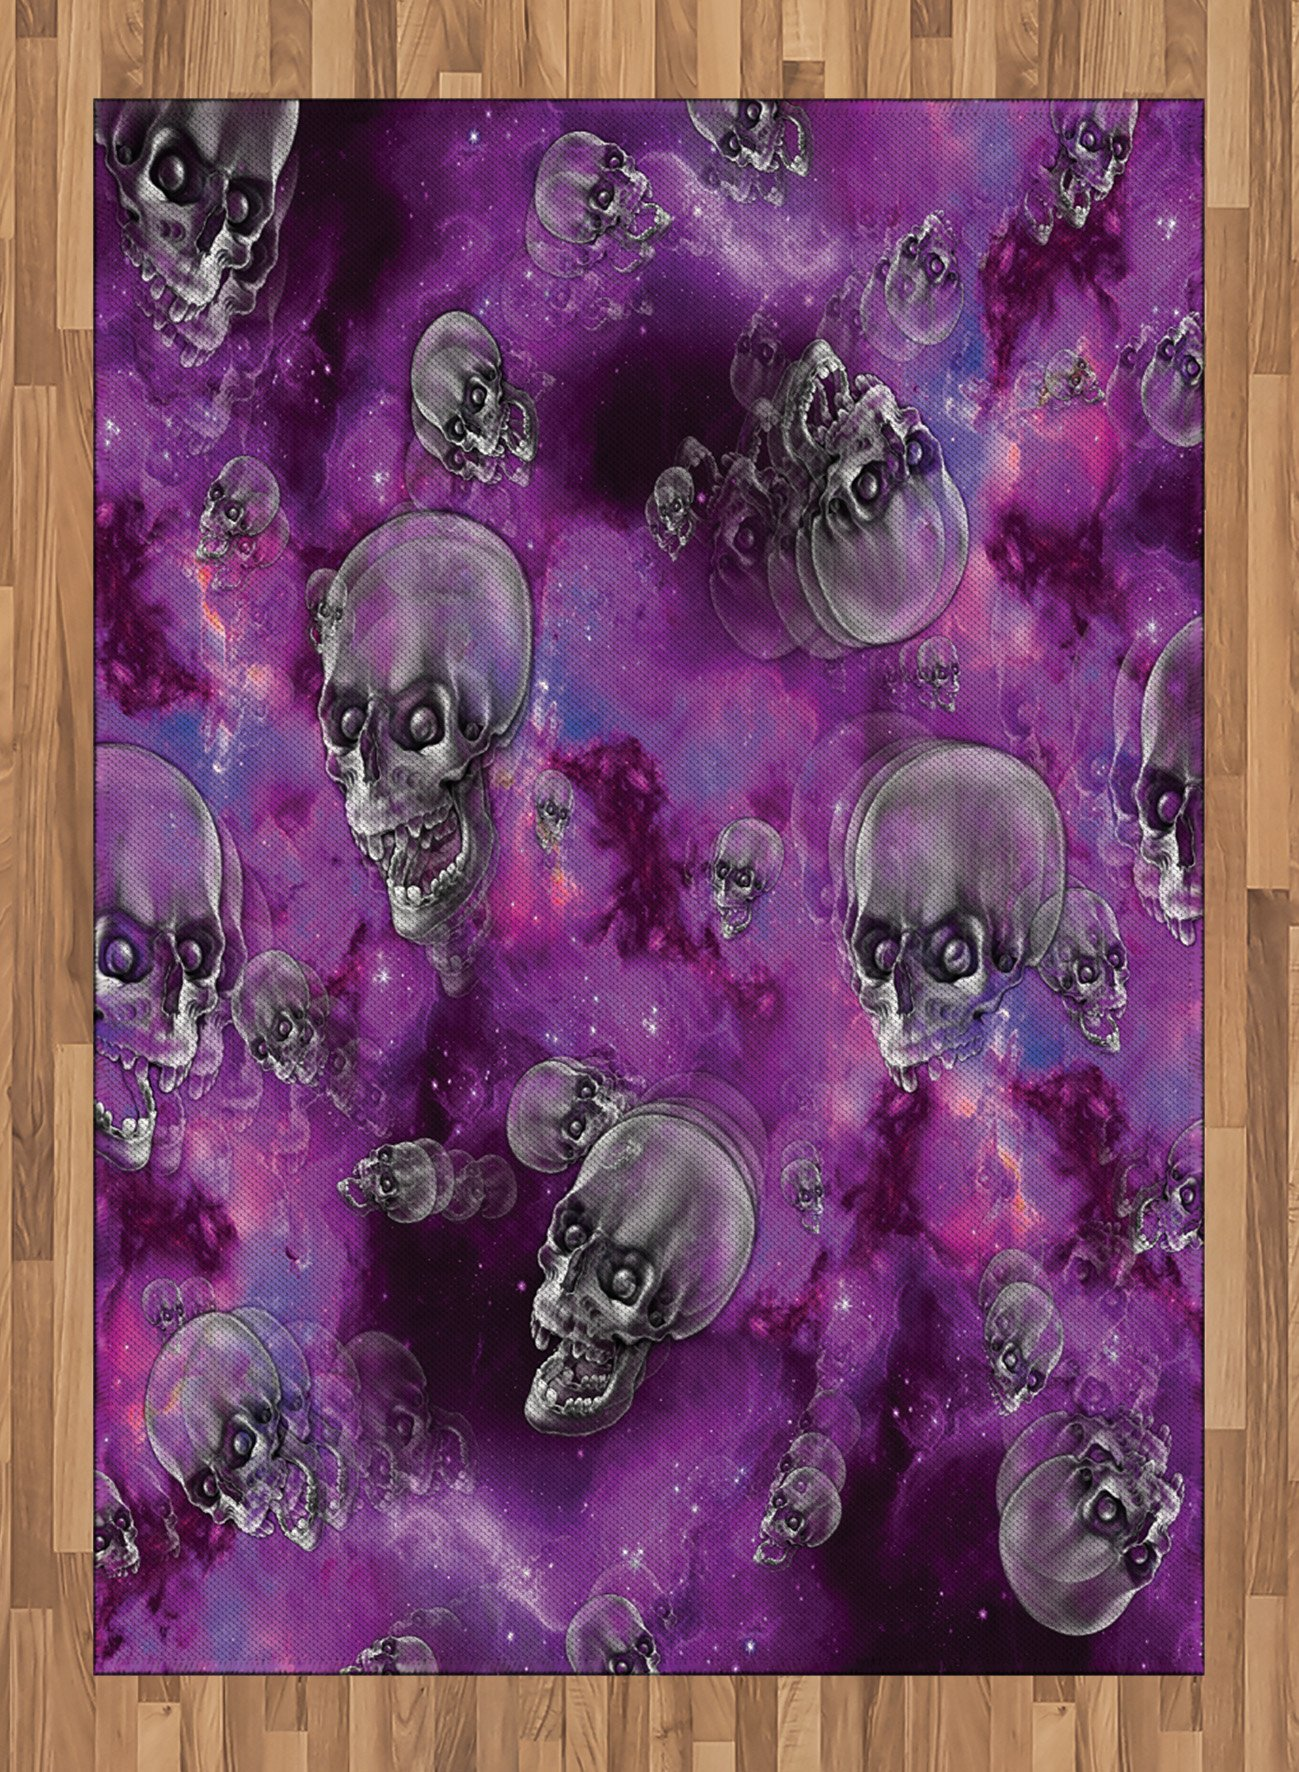 Skull Area Rug by Ambesonne, Horror Movie Thirller Themed Flying Skull Heads Halloween in Outer Space Image, Flat Woven Accent Rug for Living Room Bedroom Dining Room, 5.2 x 7.5 FT, Black and Purple